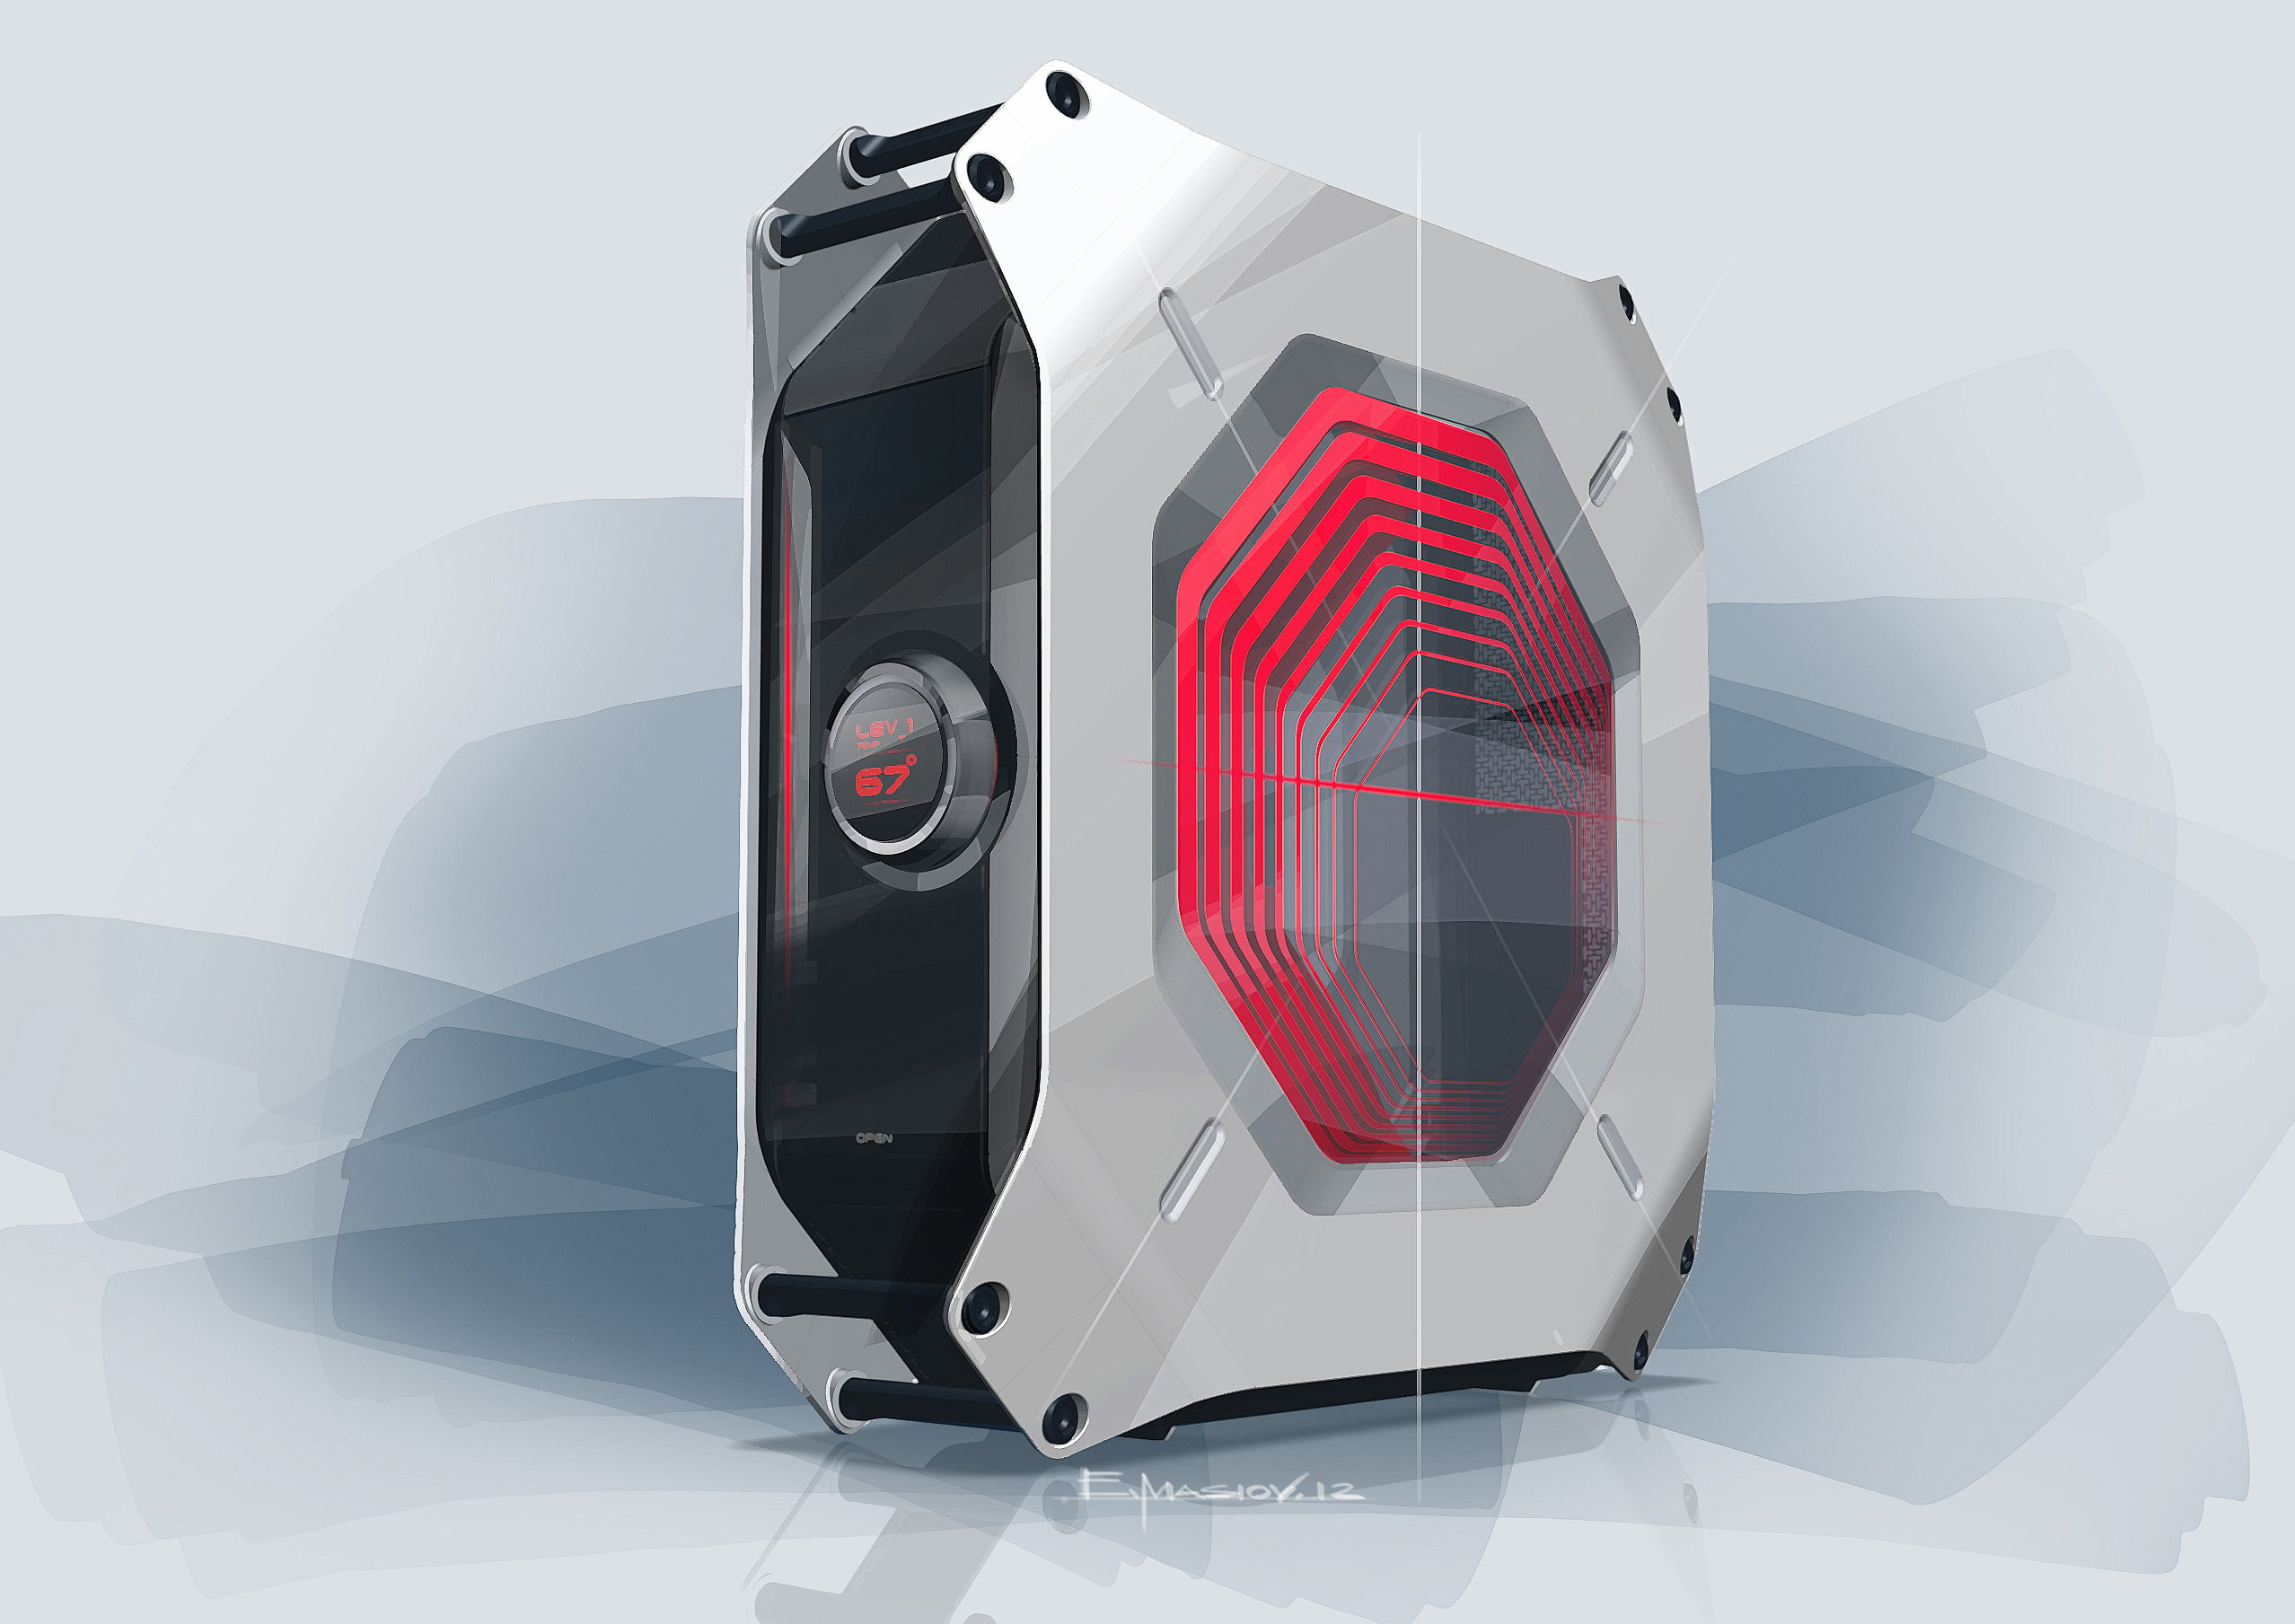 ASRock M8 Compact Gaming PC